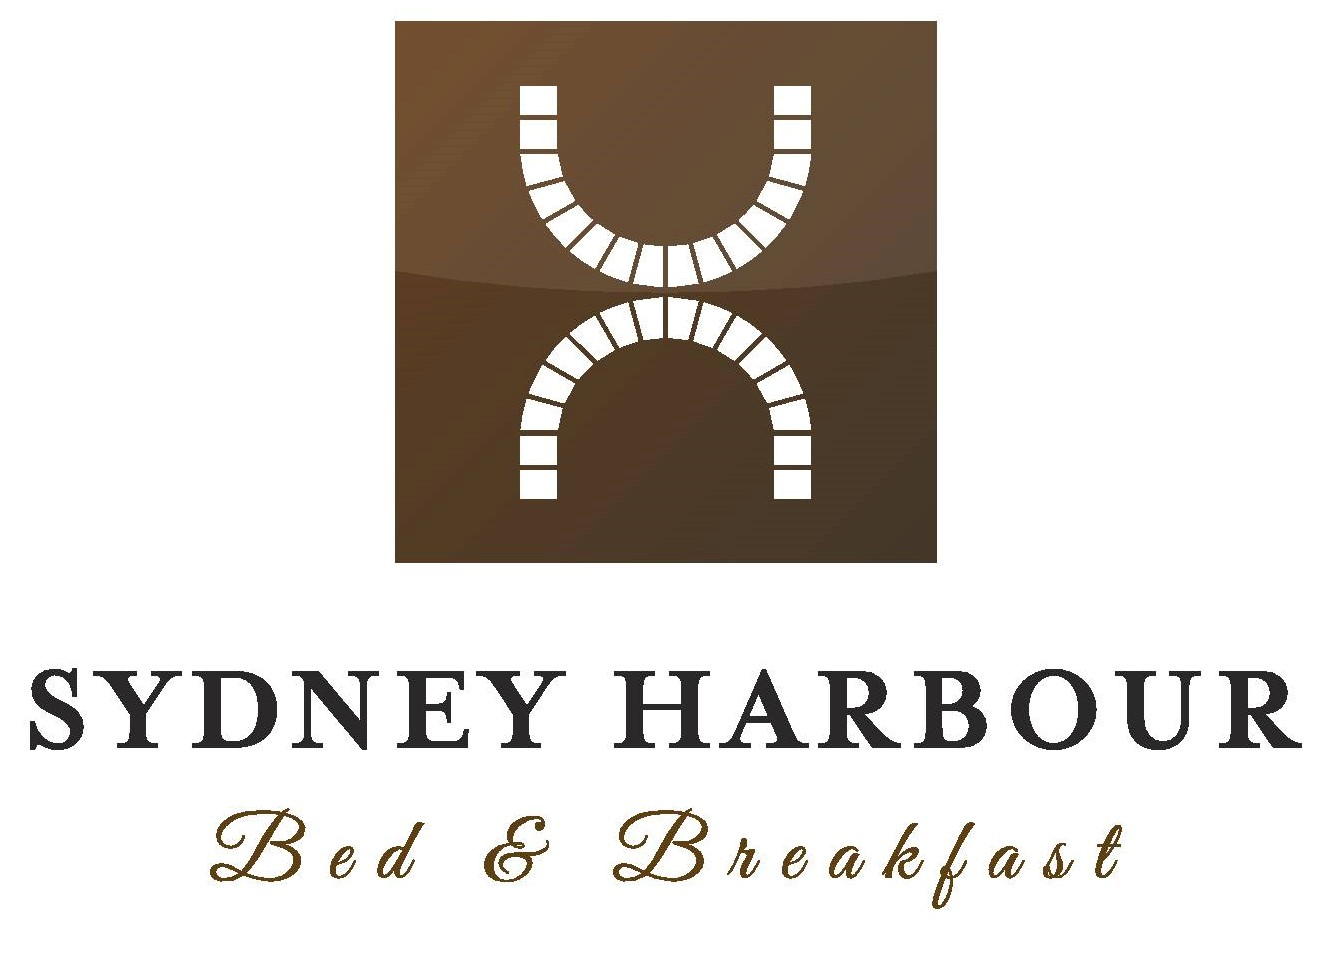 Sydney Harbour Bed and Breakfast(悉尼海港精品酒店(含澳洲热早餐))